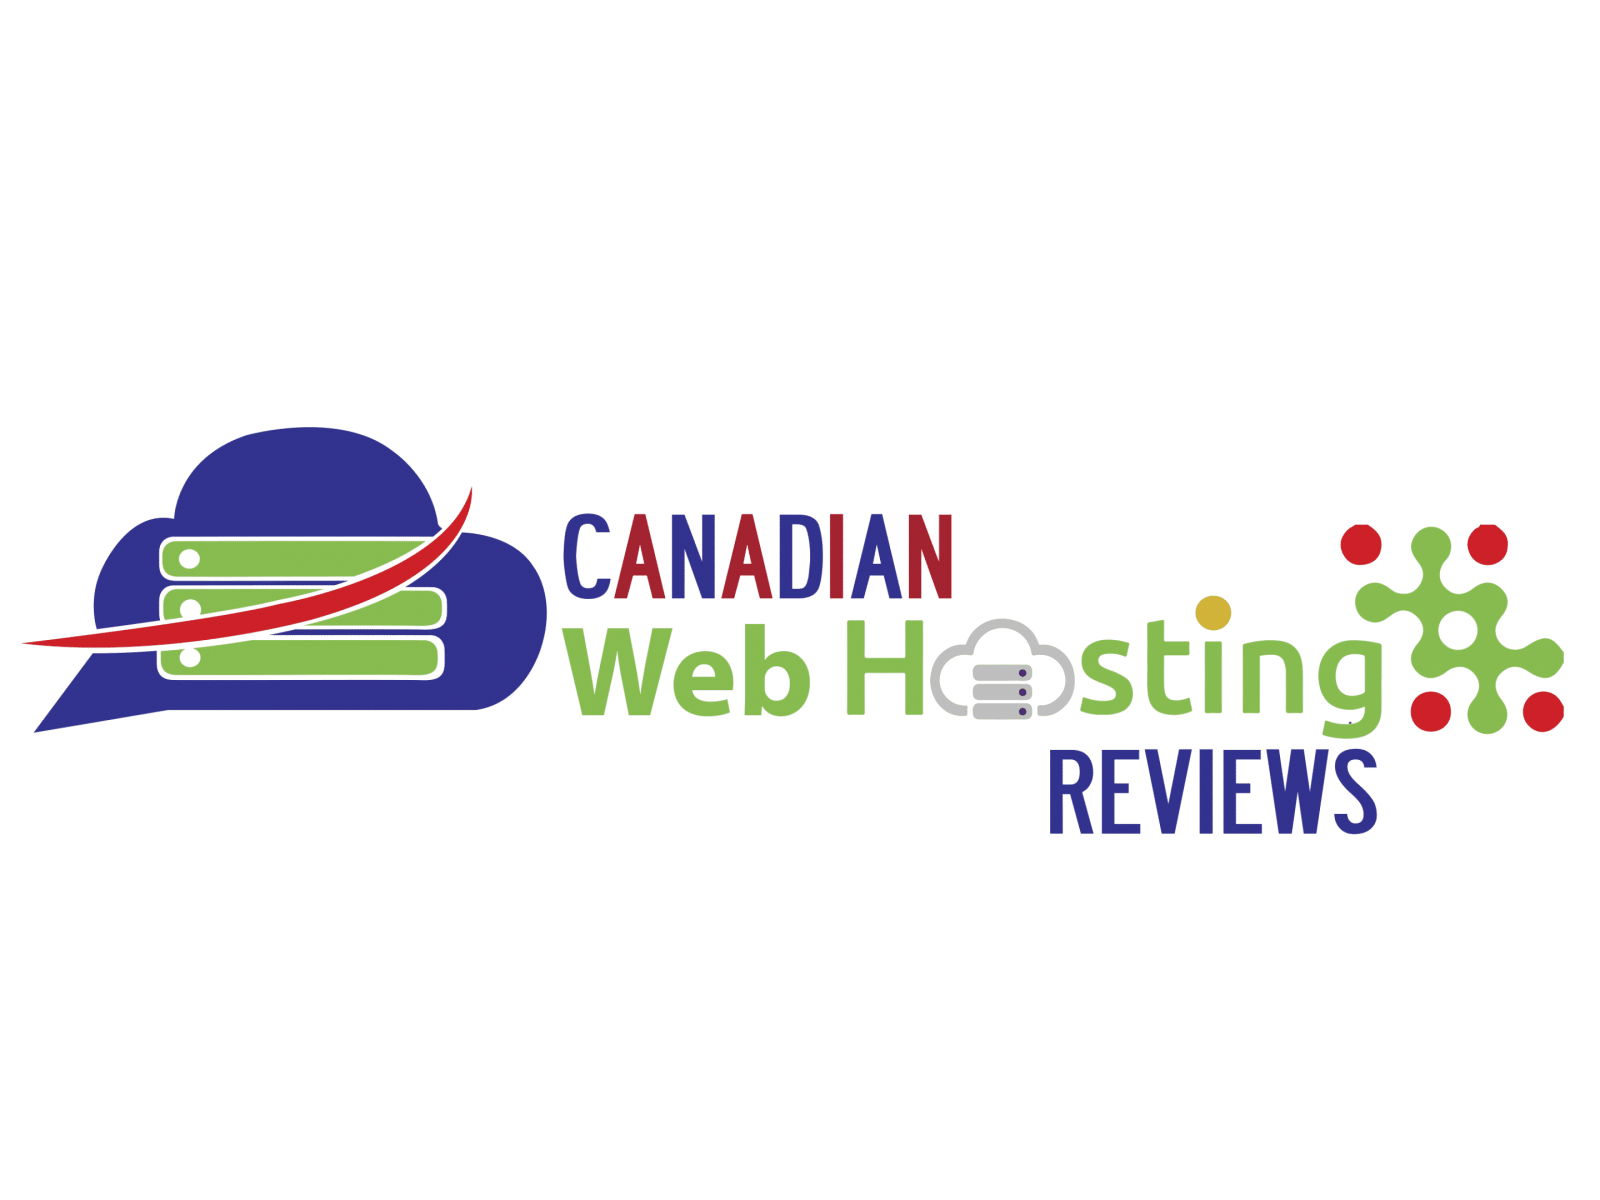 canadian web hosting reviews logo